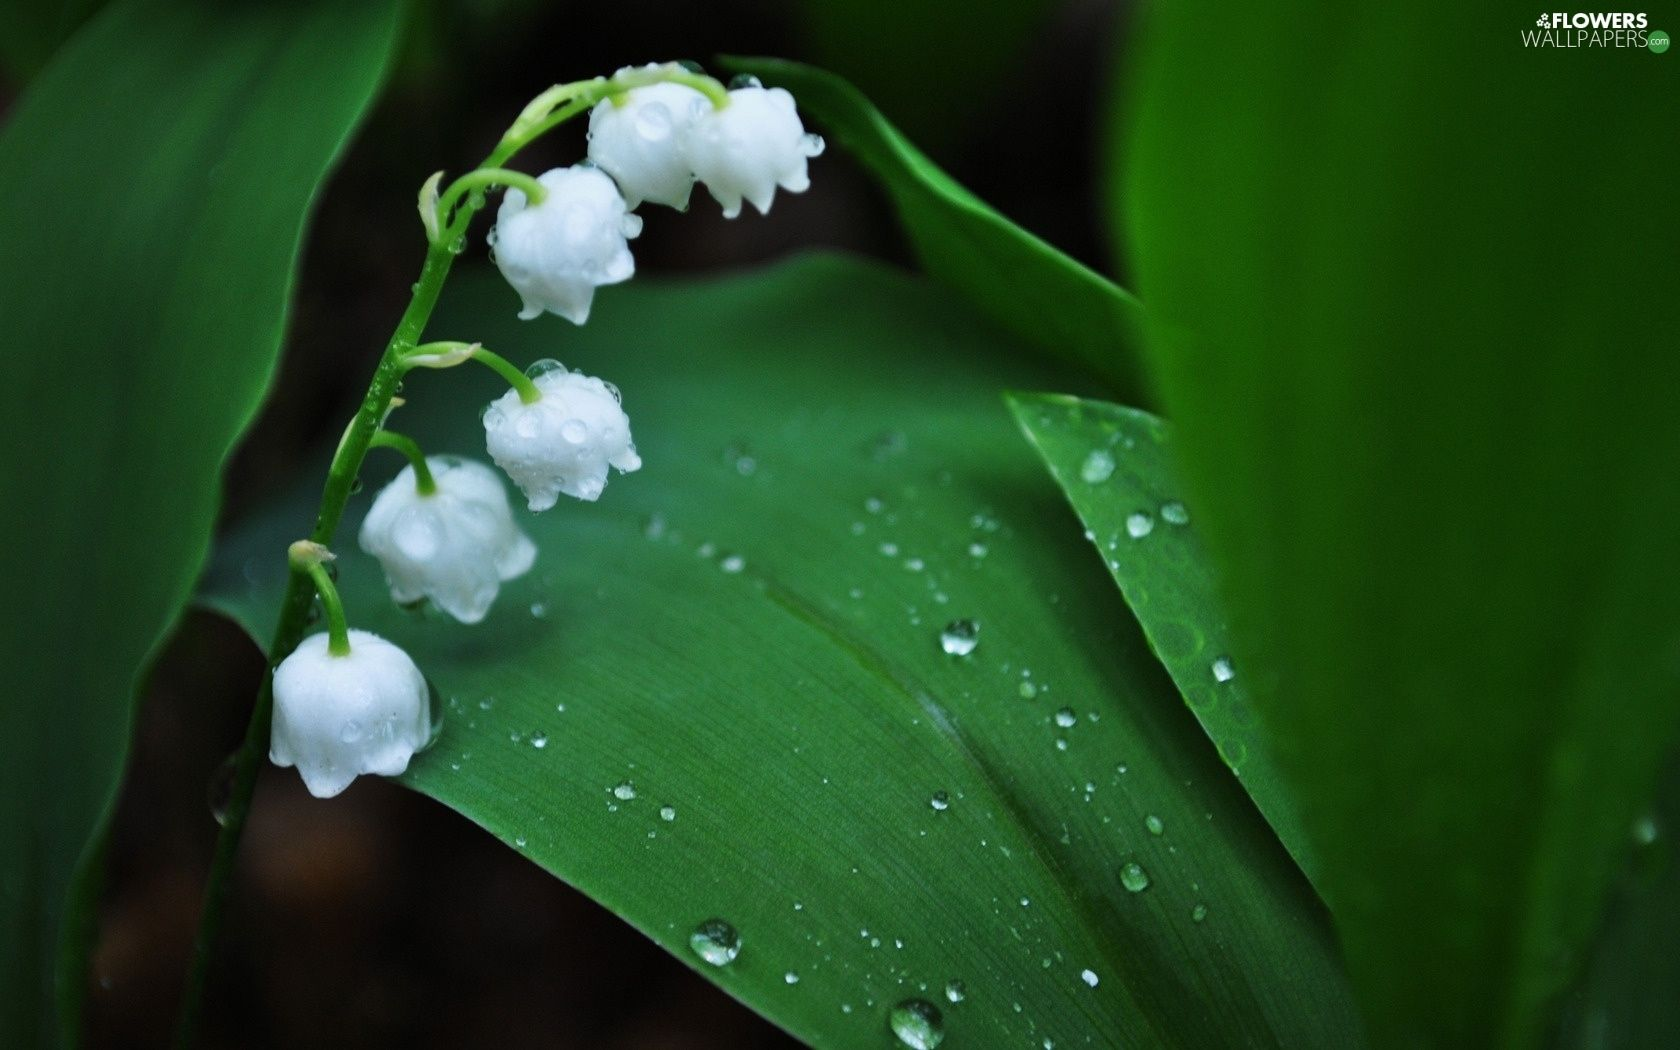 Water drops white lily of the valley flowers flowers flower izmirmasajfo Choice Image